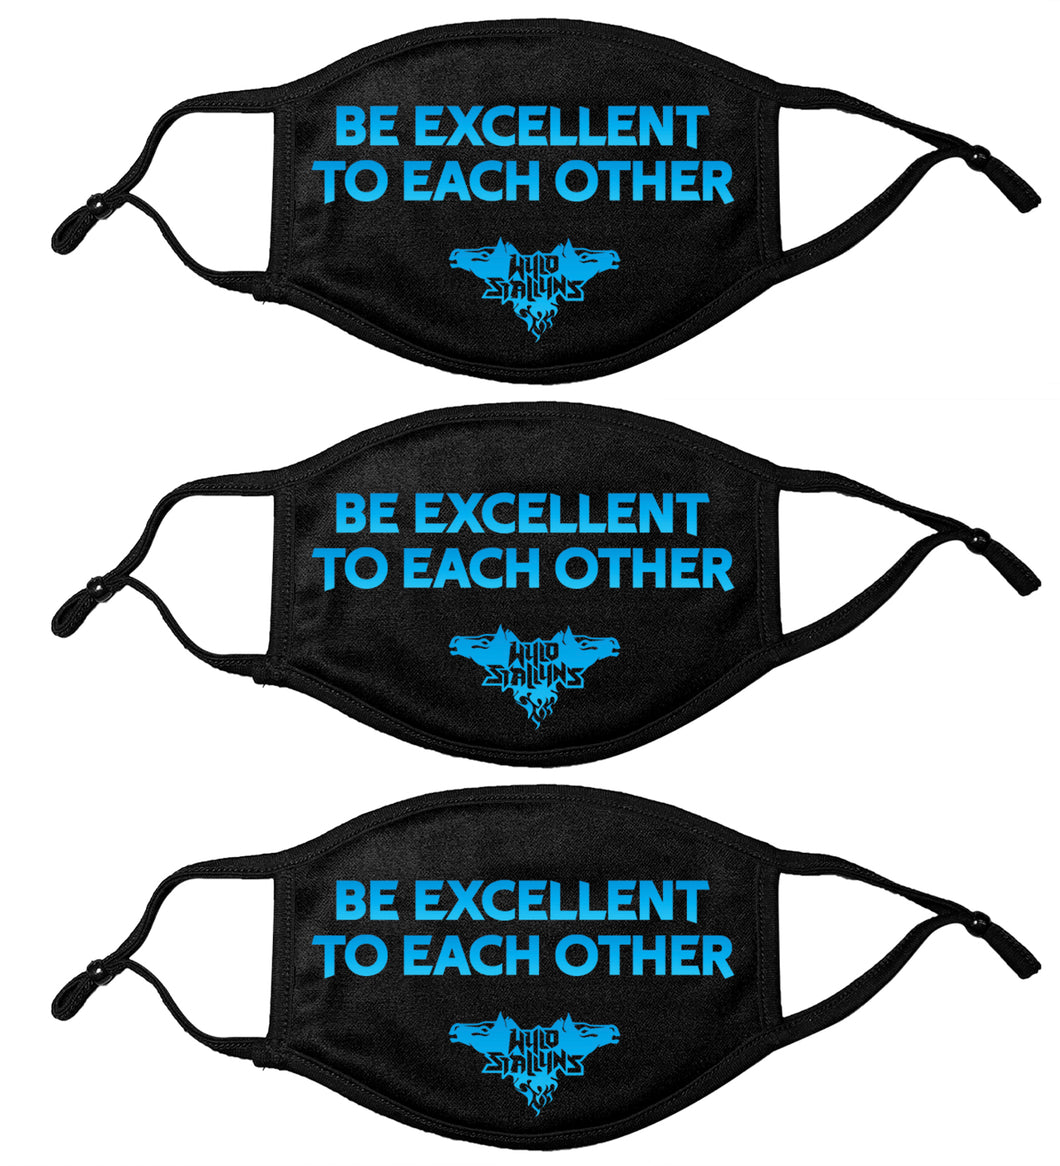 ALL NEW! 3 PACK -ADULT Be Excellent To Each other! Face Mask